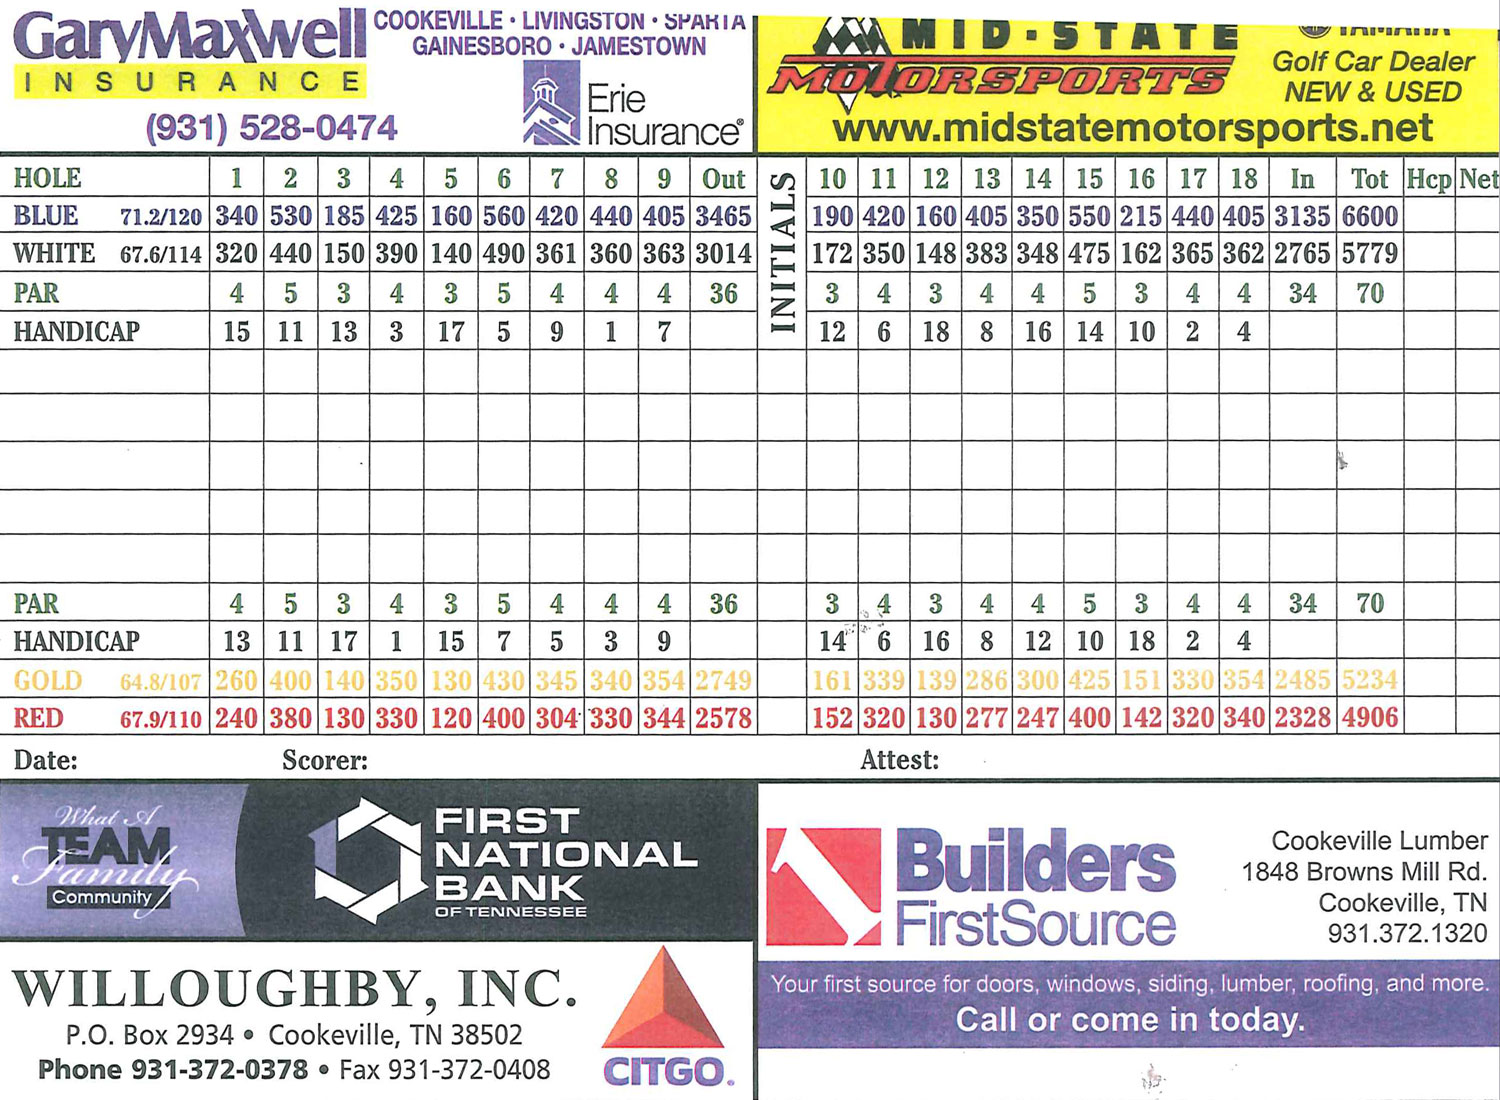 Golden-Eagle-Golf-Club-Scorecard-2